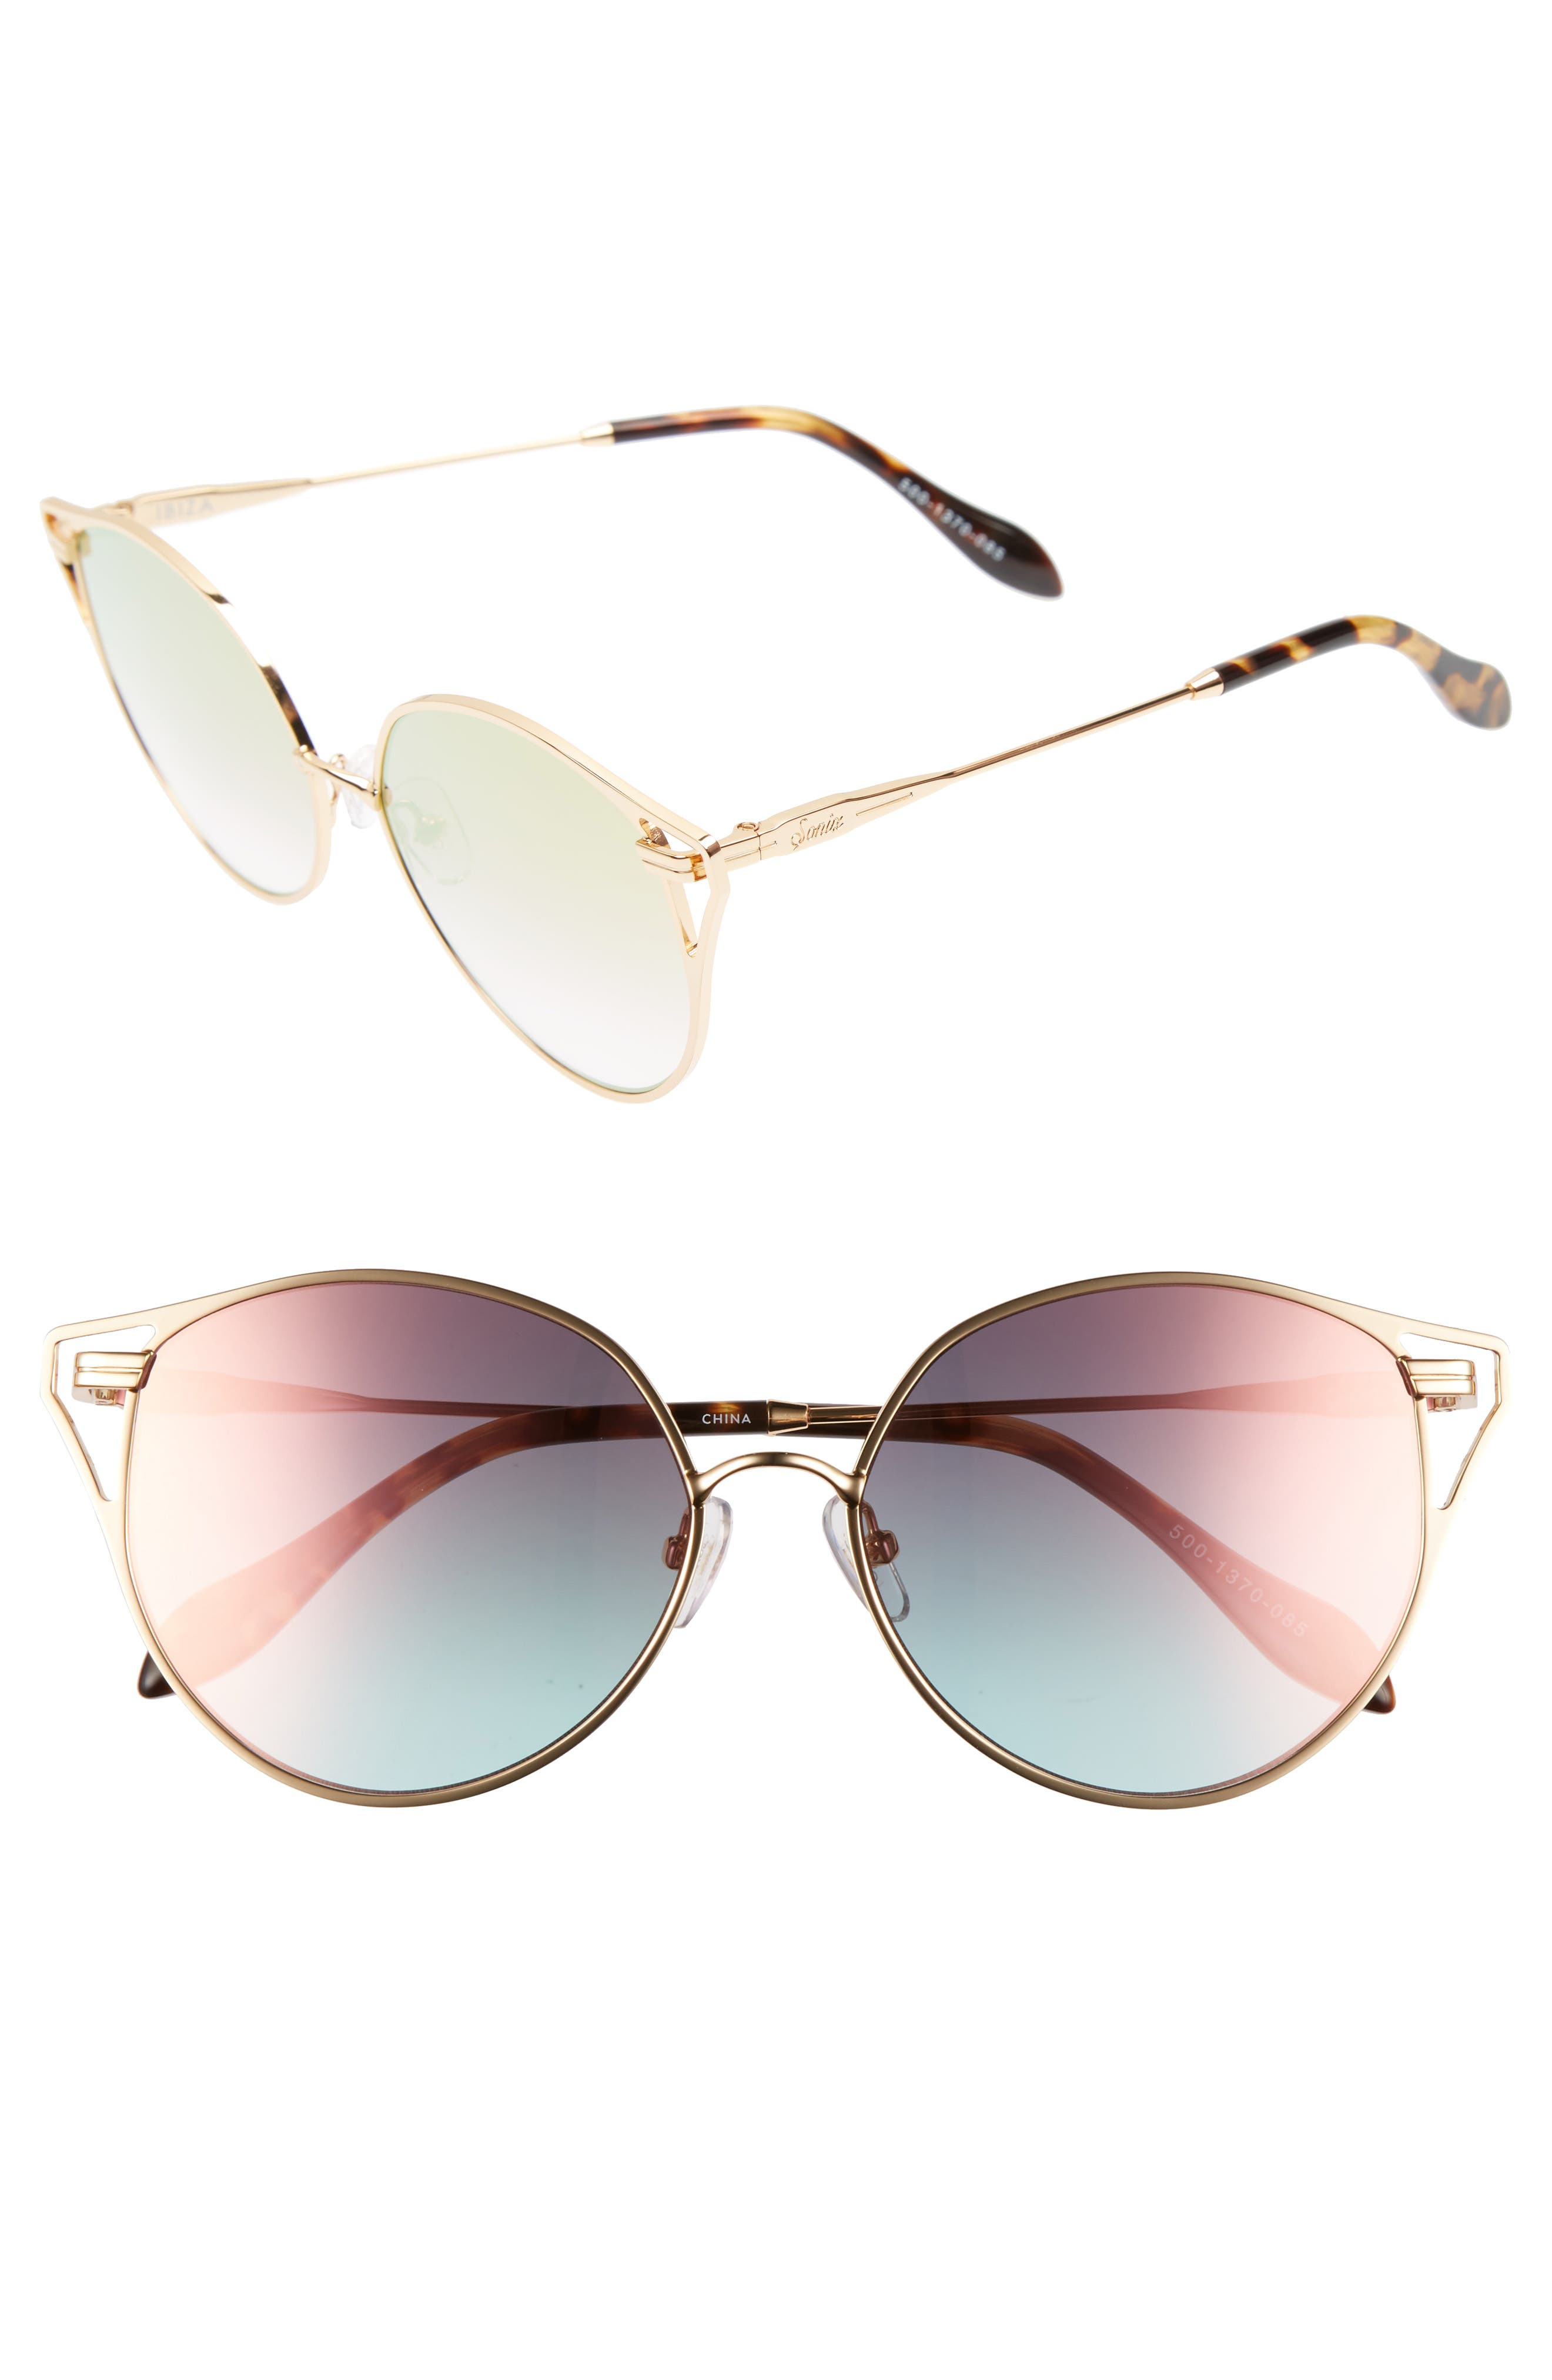 Sonix Ibiza 55mm Cat Eye Sunglasses